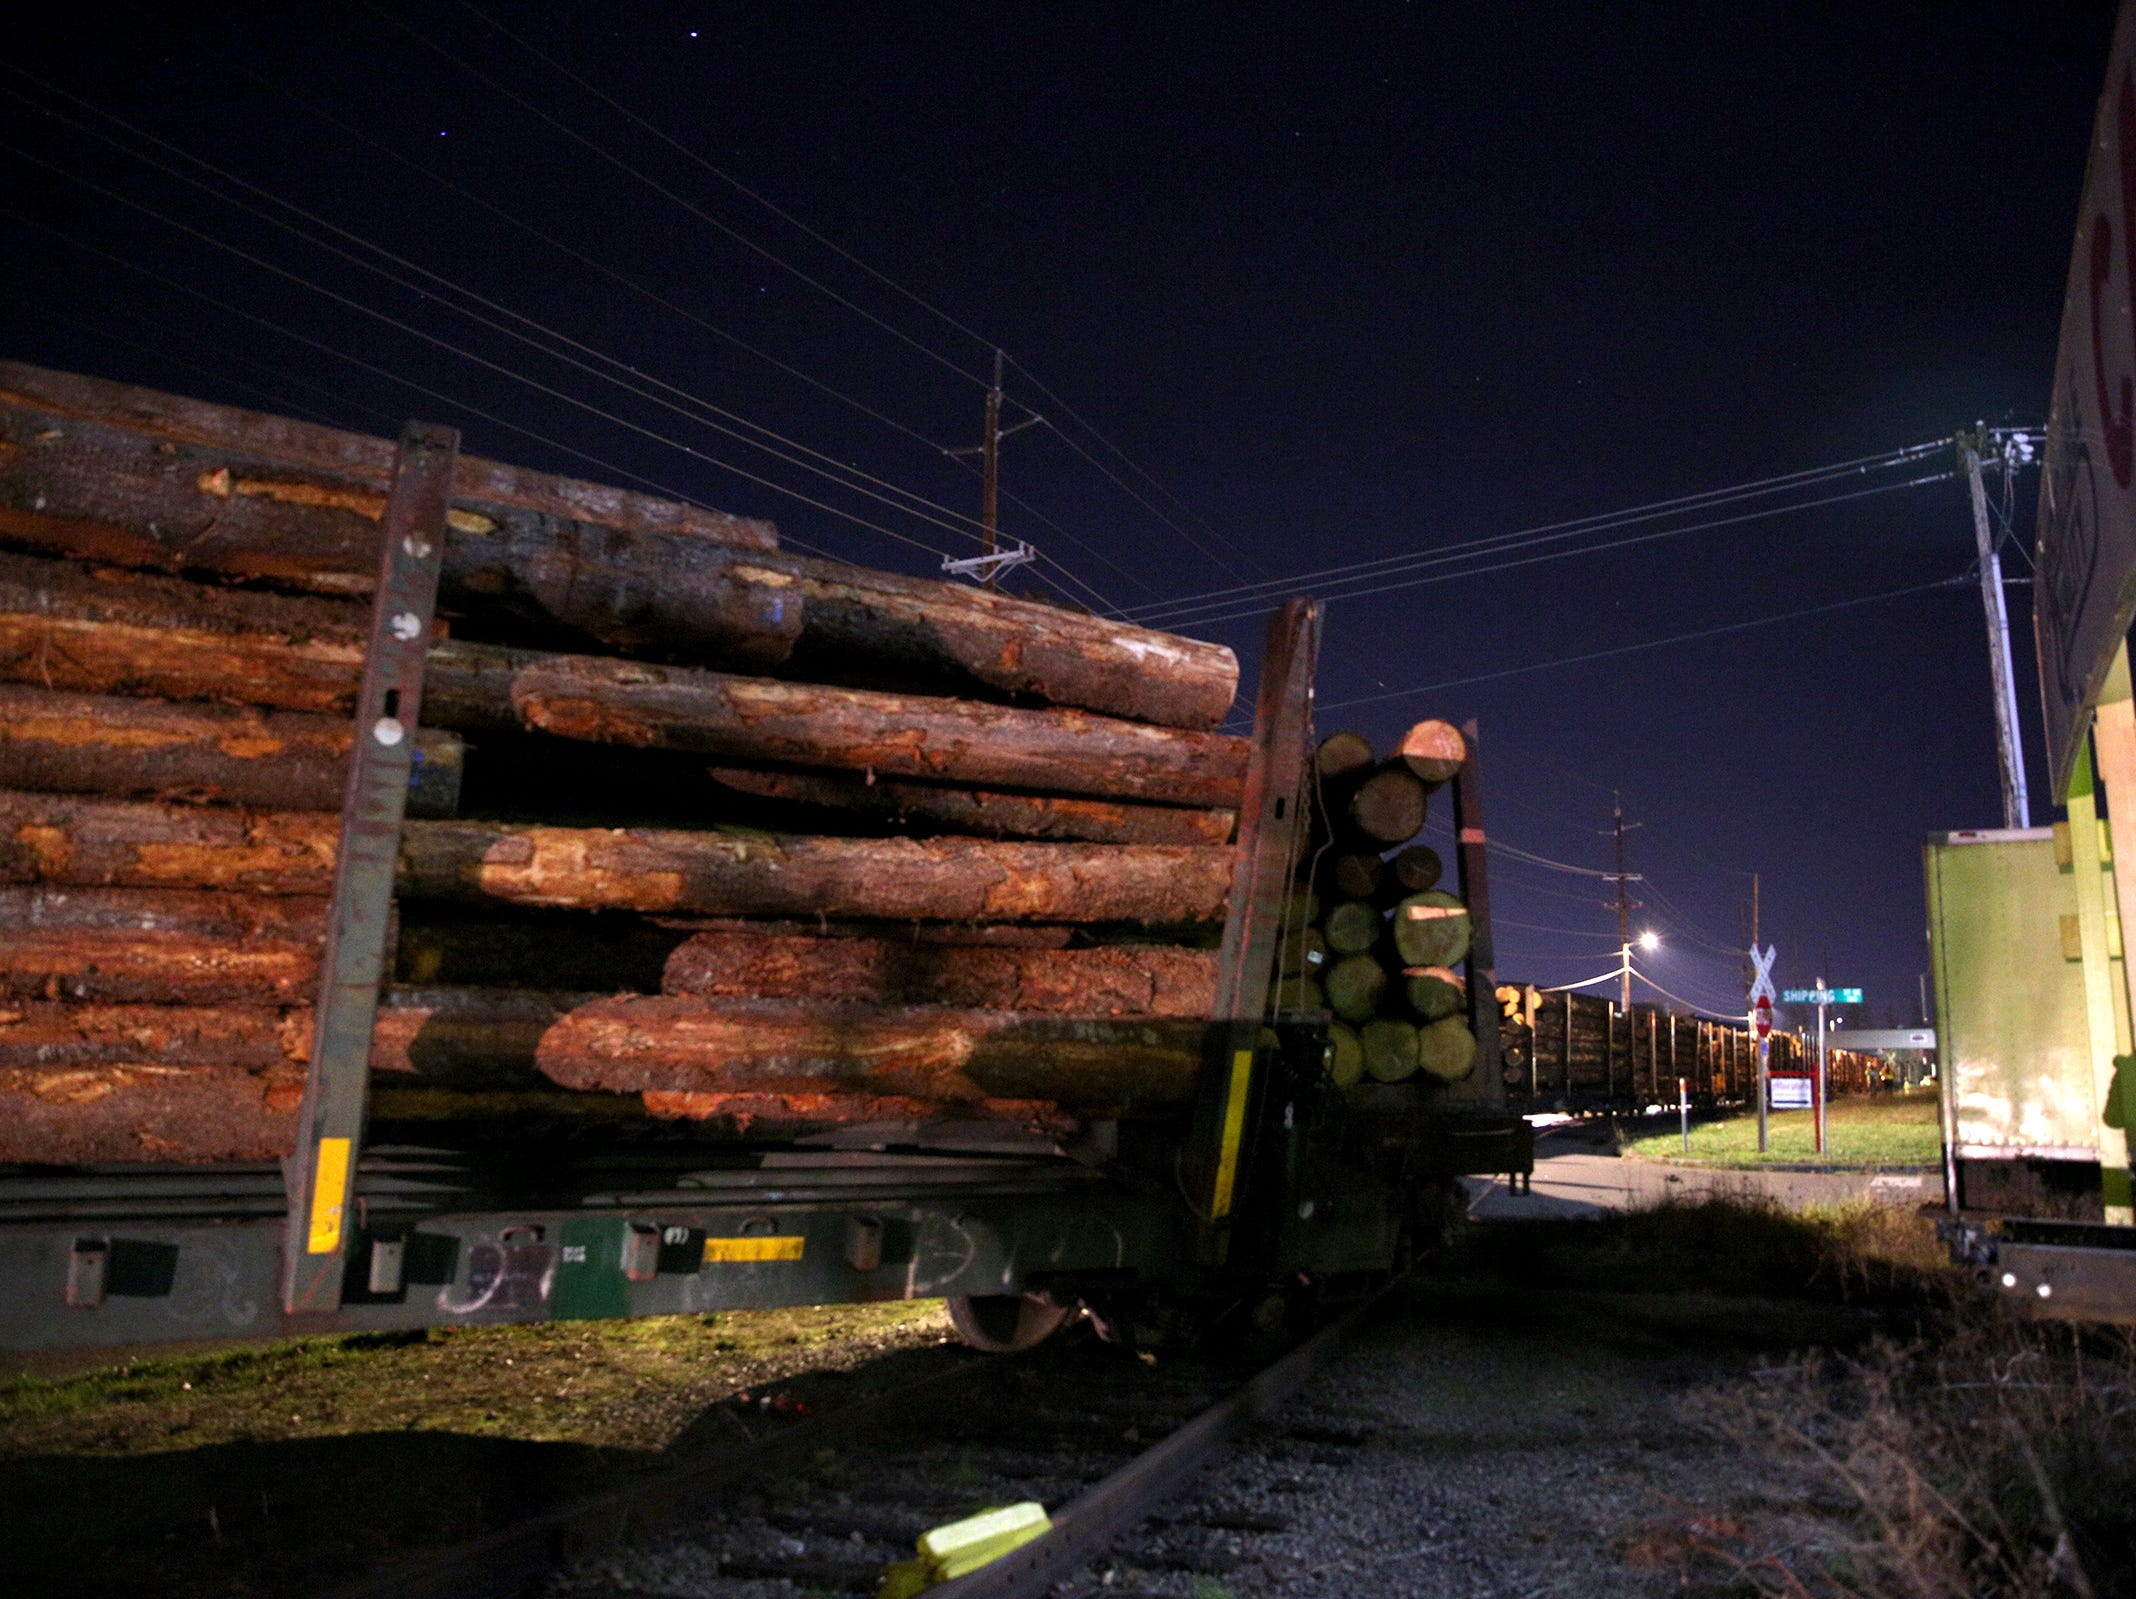 A train carrying logs derailed just north of downtown Salem on Tuesday, Dec. 4.